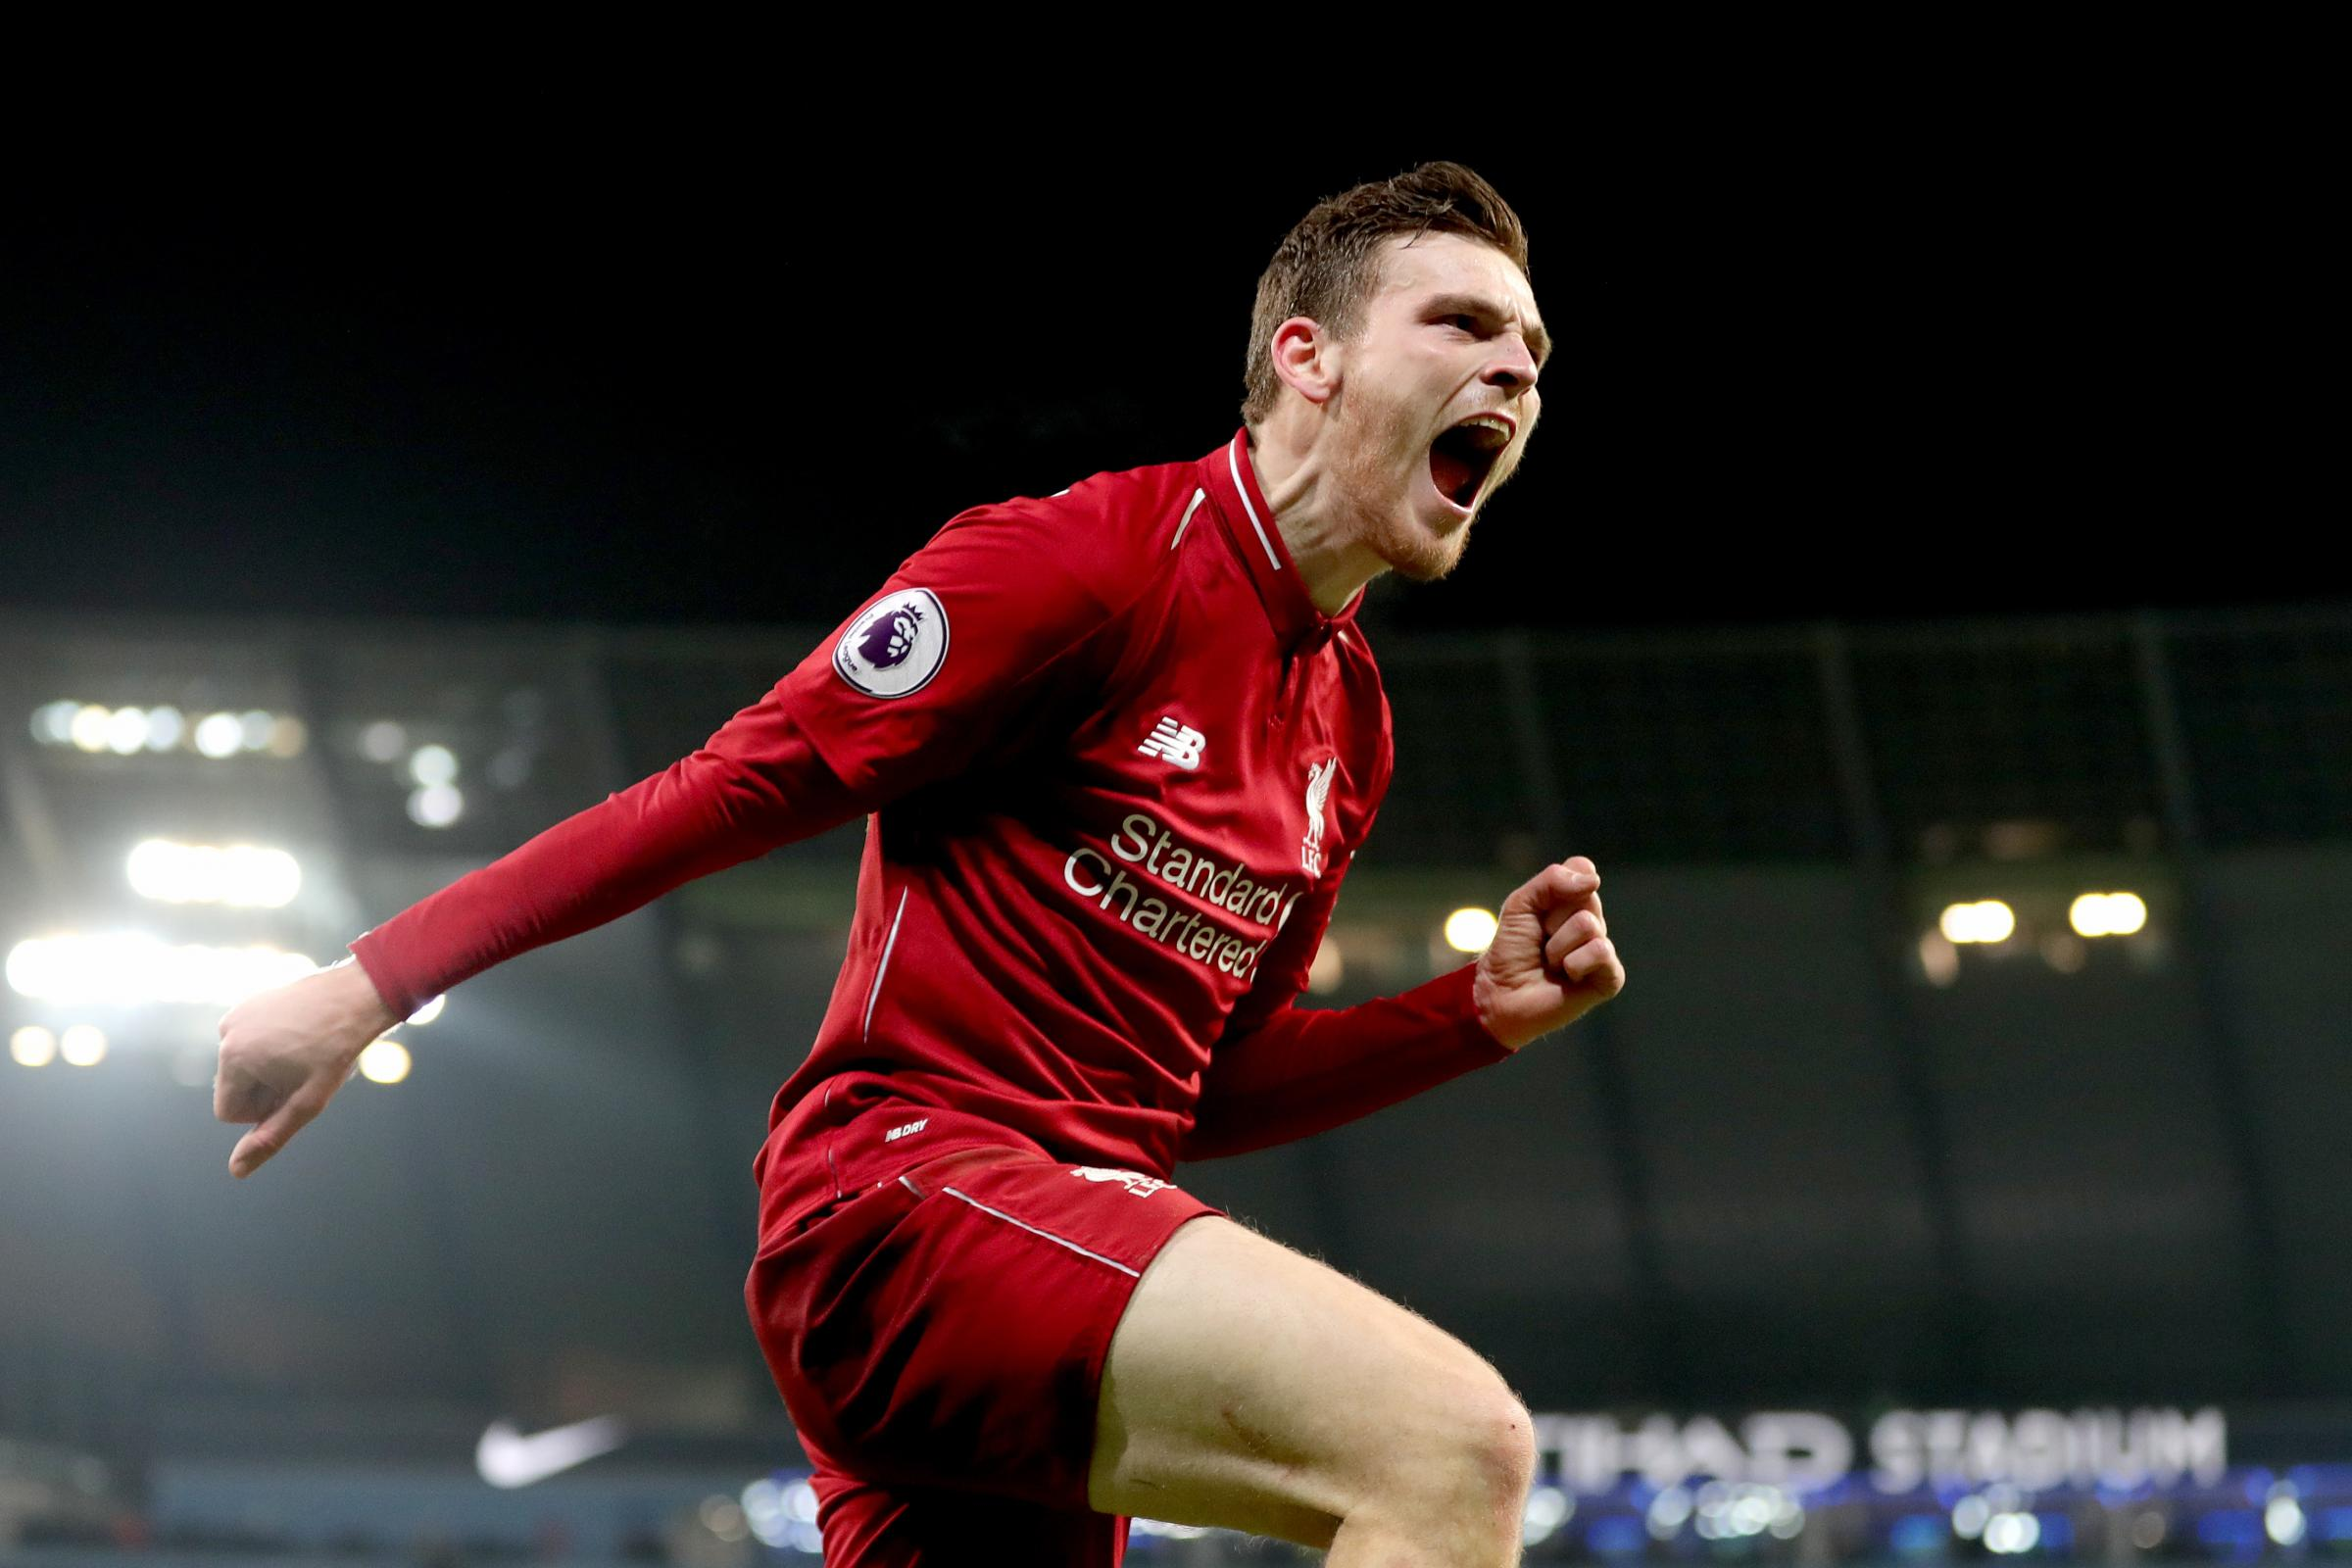 Liverpool's Andrew Robertson has signed a new five-year contract.